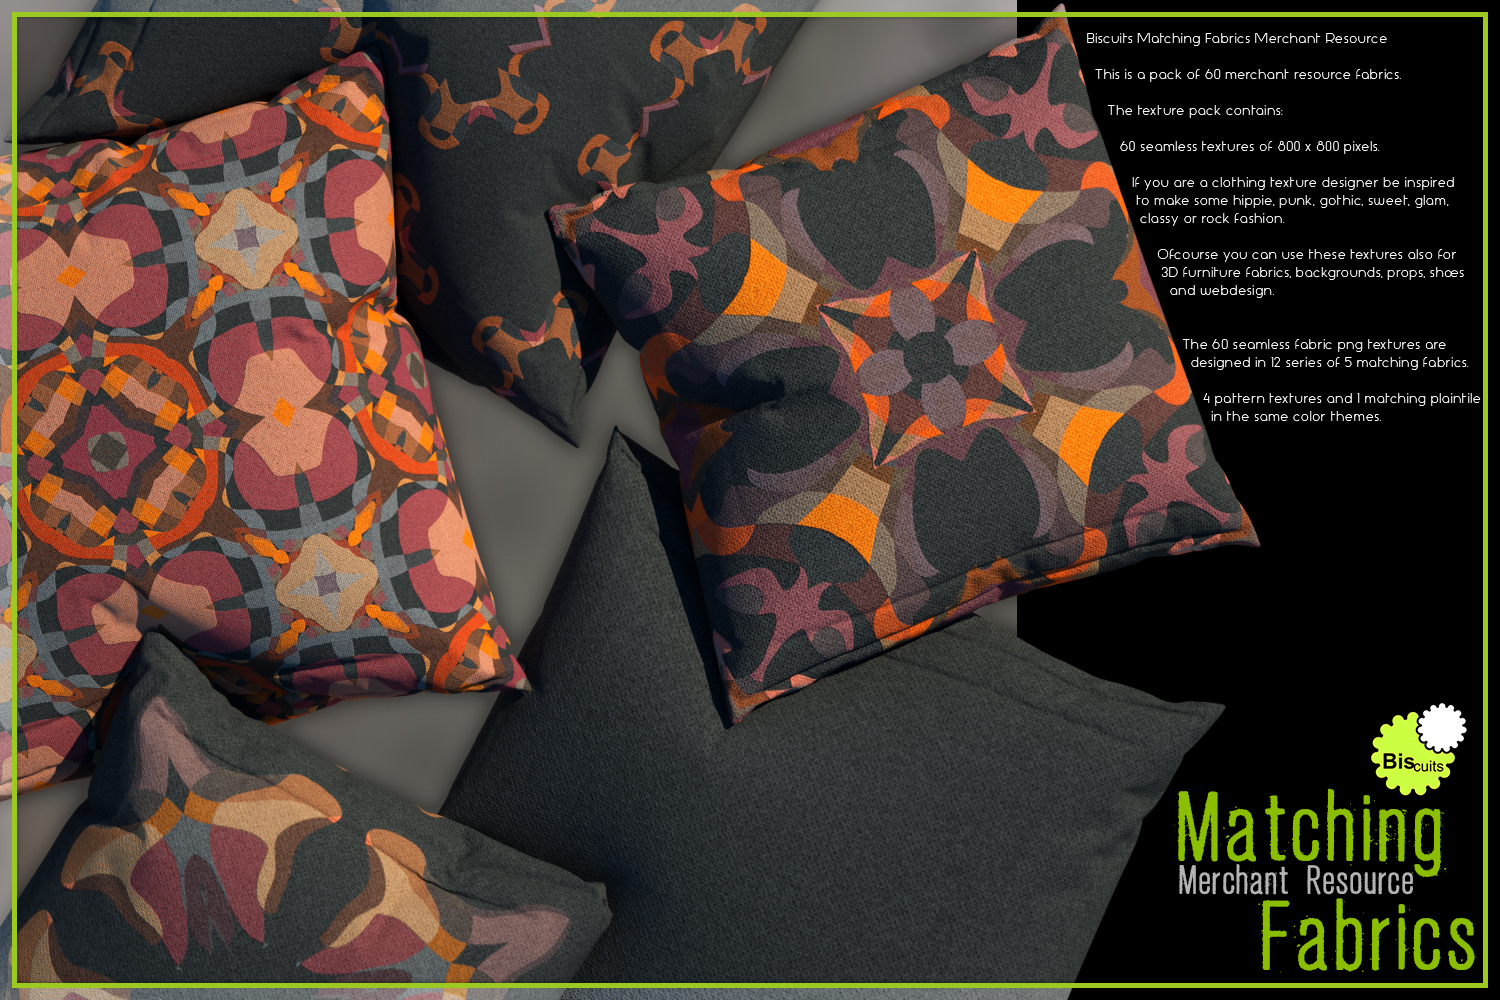 Biscuits Matching Fabrics Merchant Resource